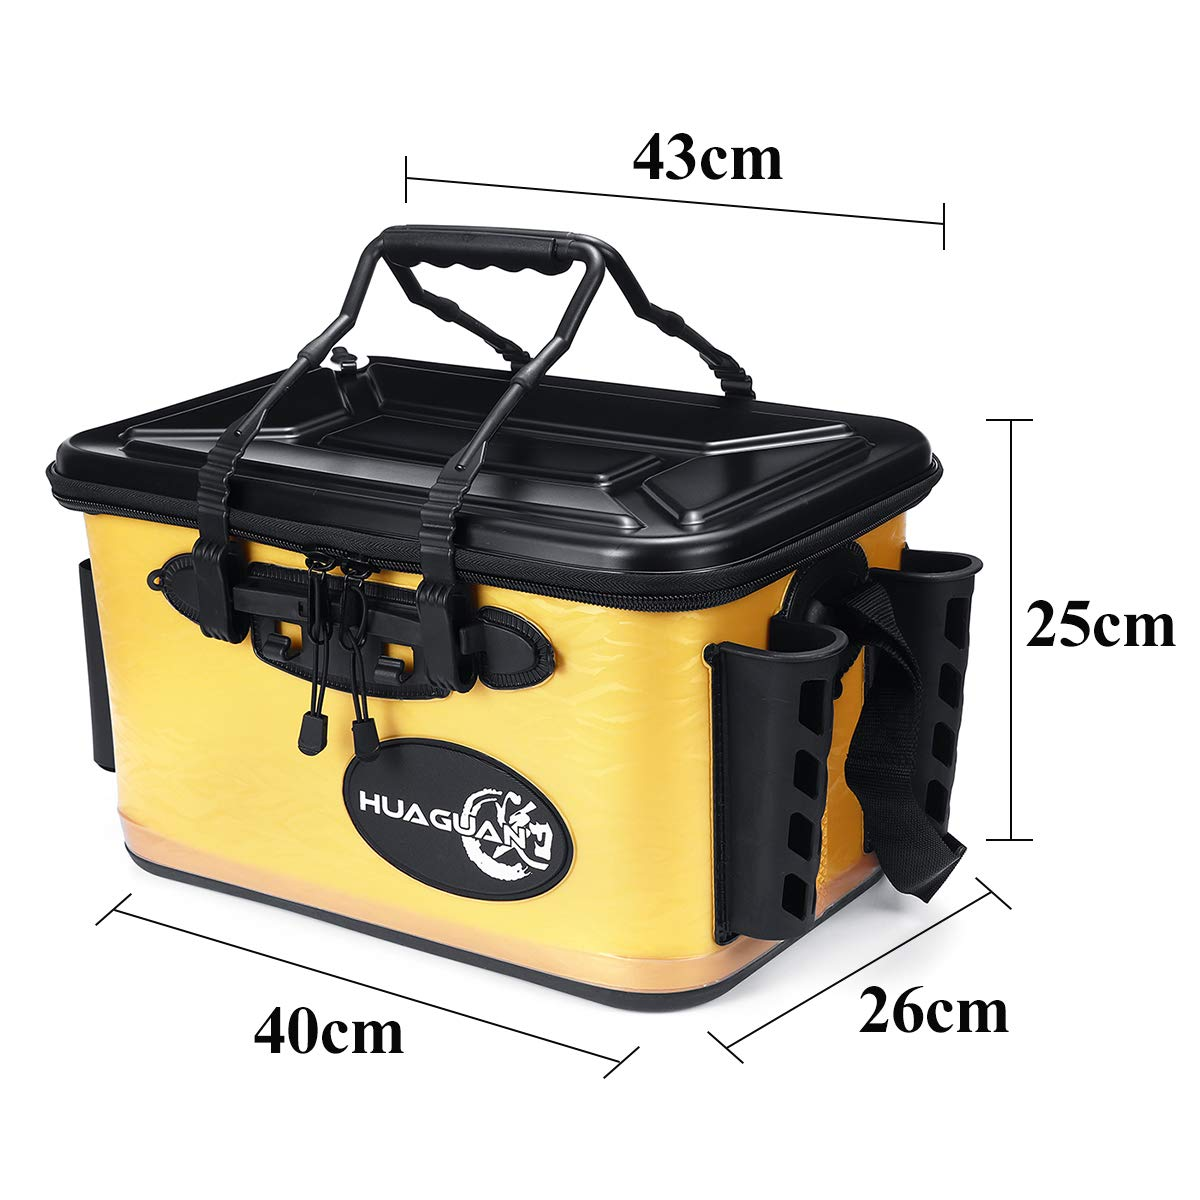 TuToy 28L Waterproof Fishing Live Bait Cooler Insulated Dry Box Foldable With Air Pump Shoulder Strap Amarillo